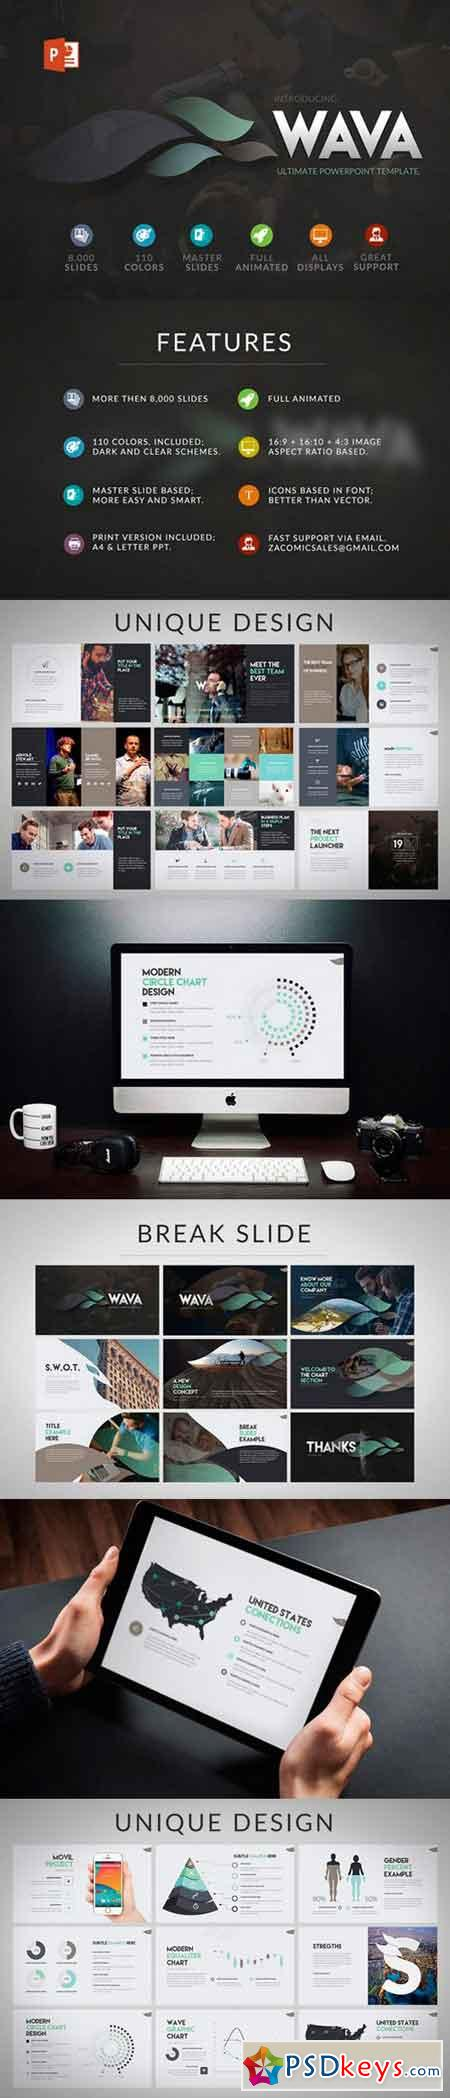 powerpoint templates torrents - wava powerpoint template 535458 free download photoshop